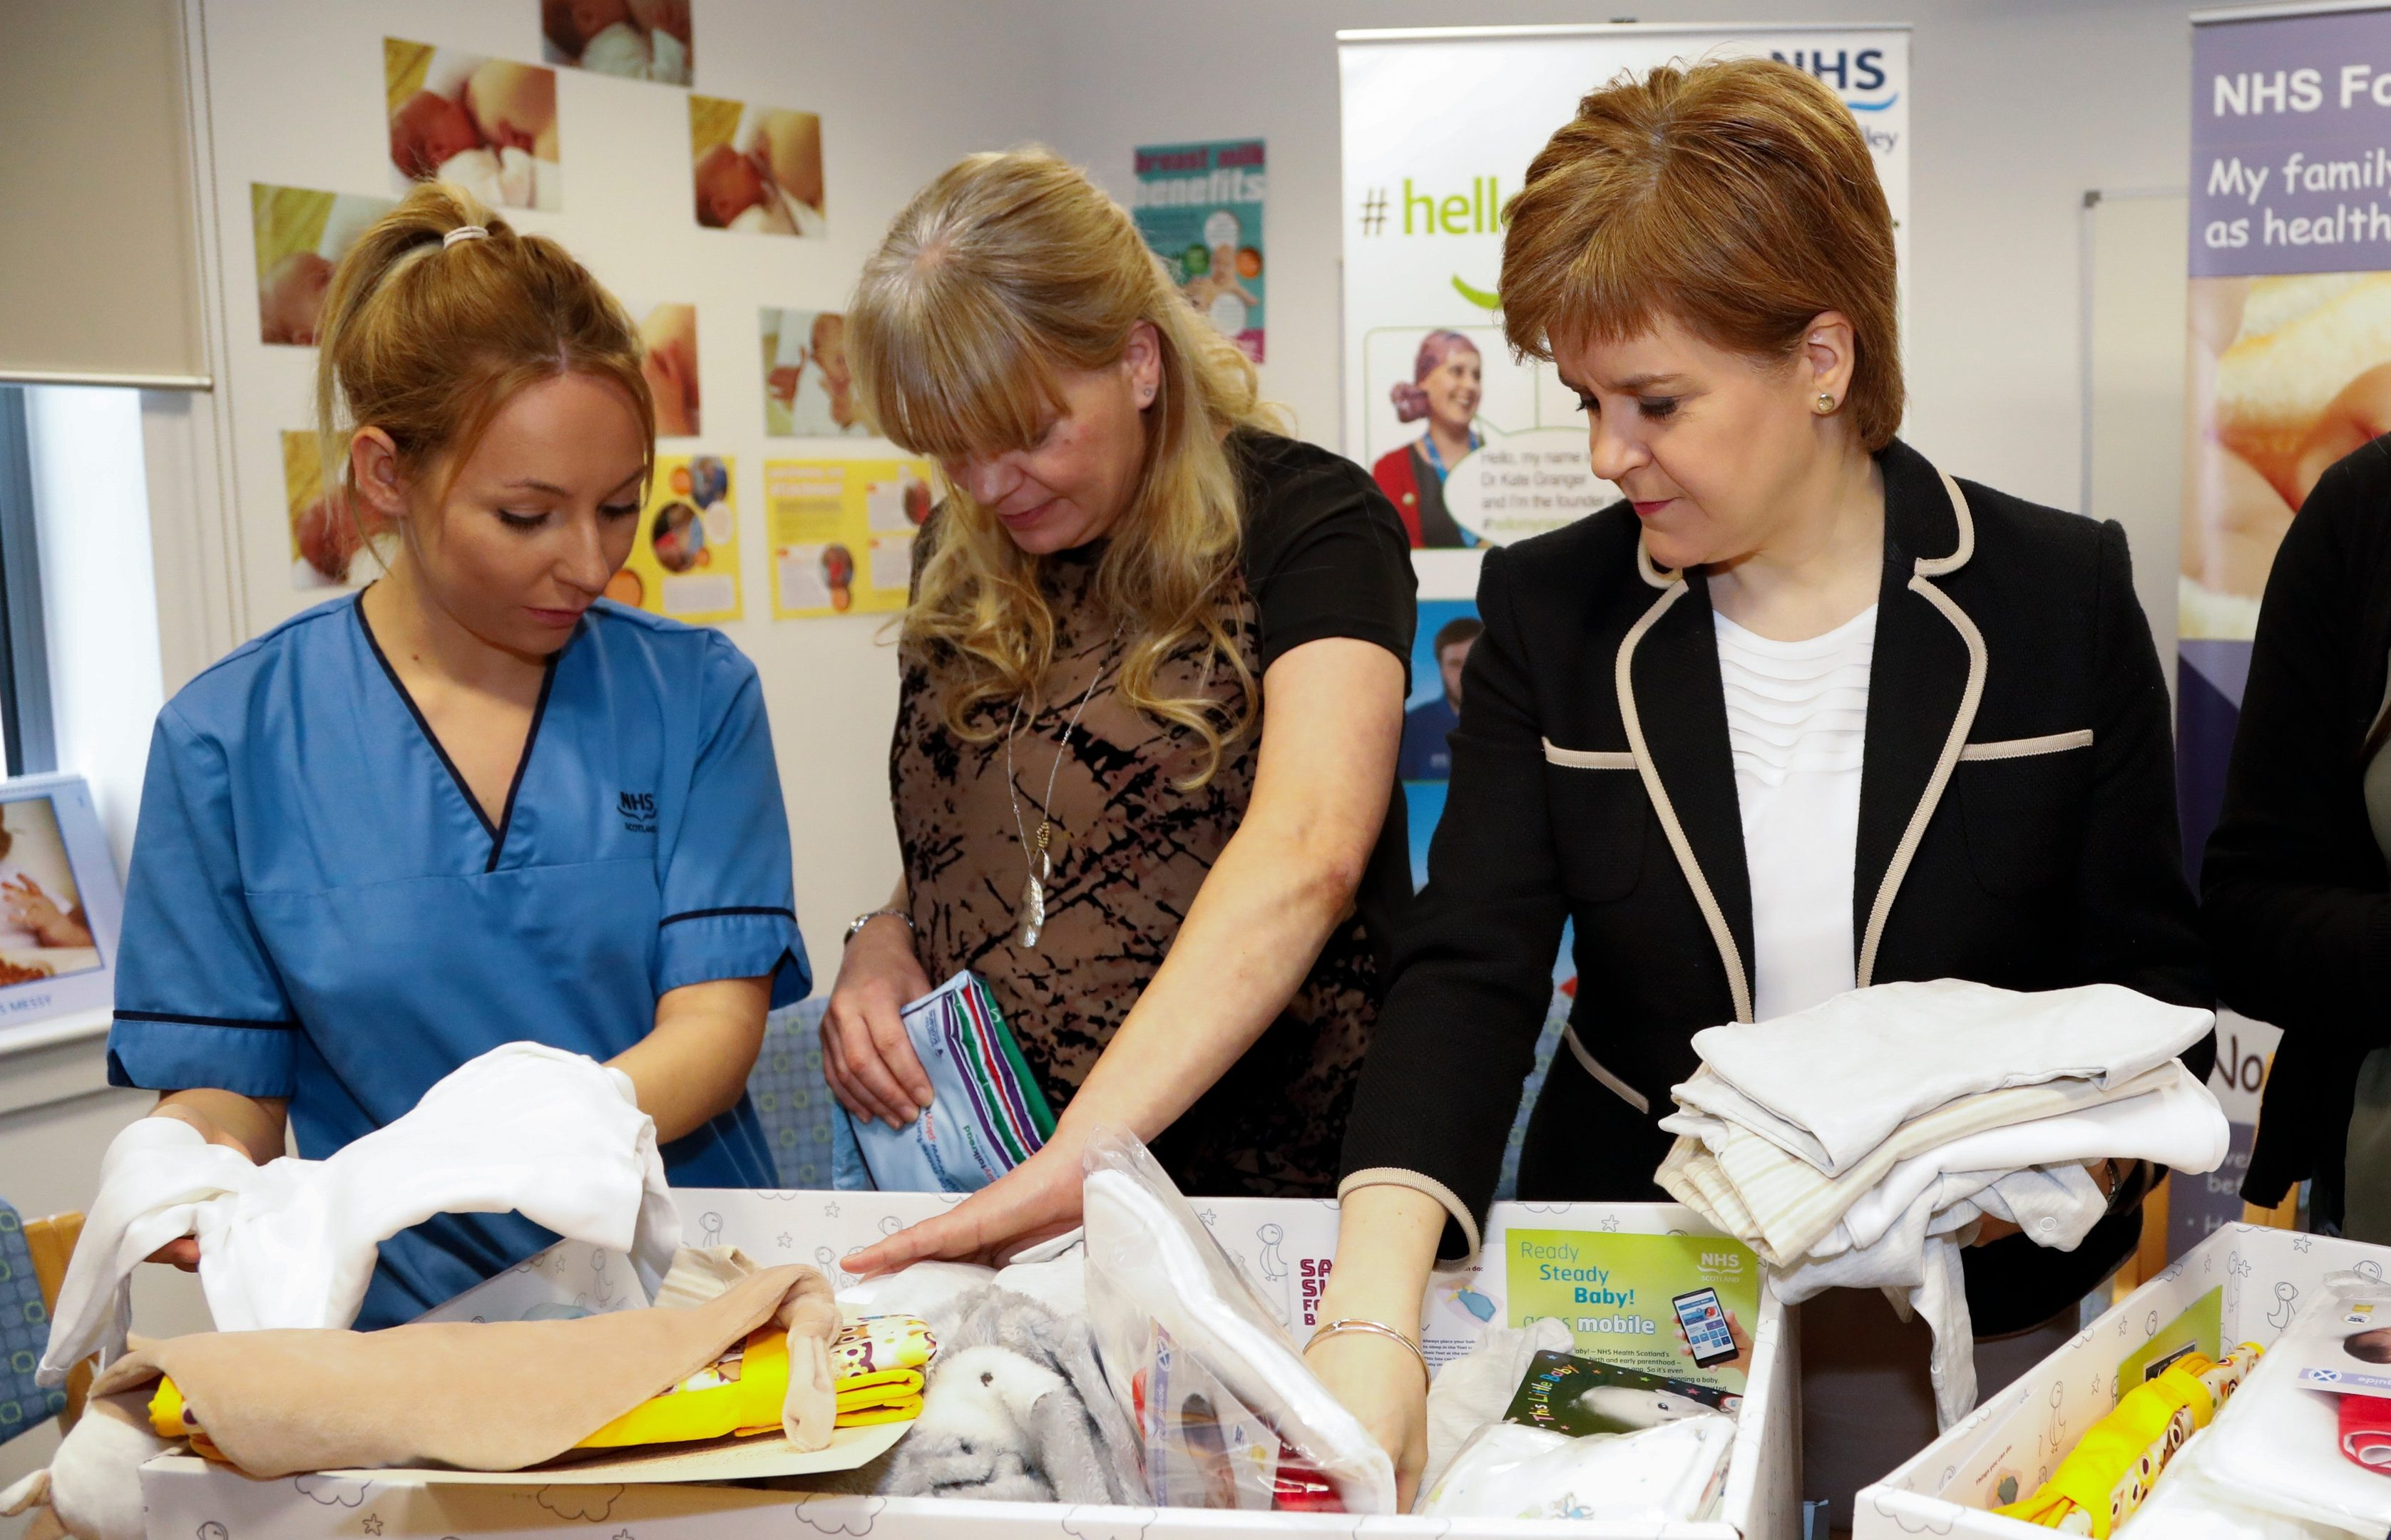 First Minister Nicola Sturgeon with one of the baby boxes